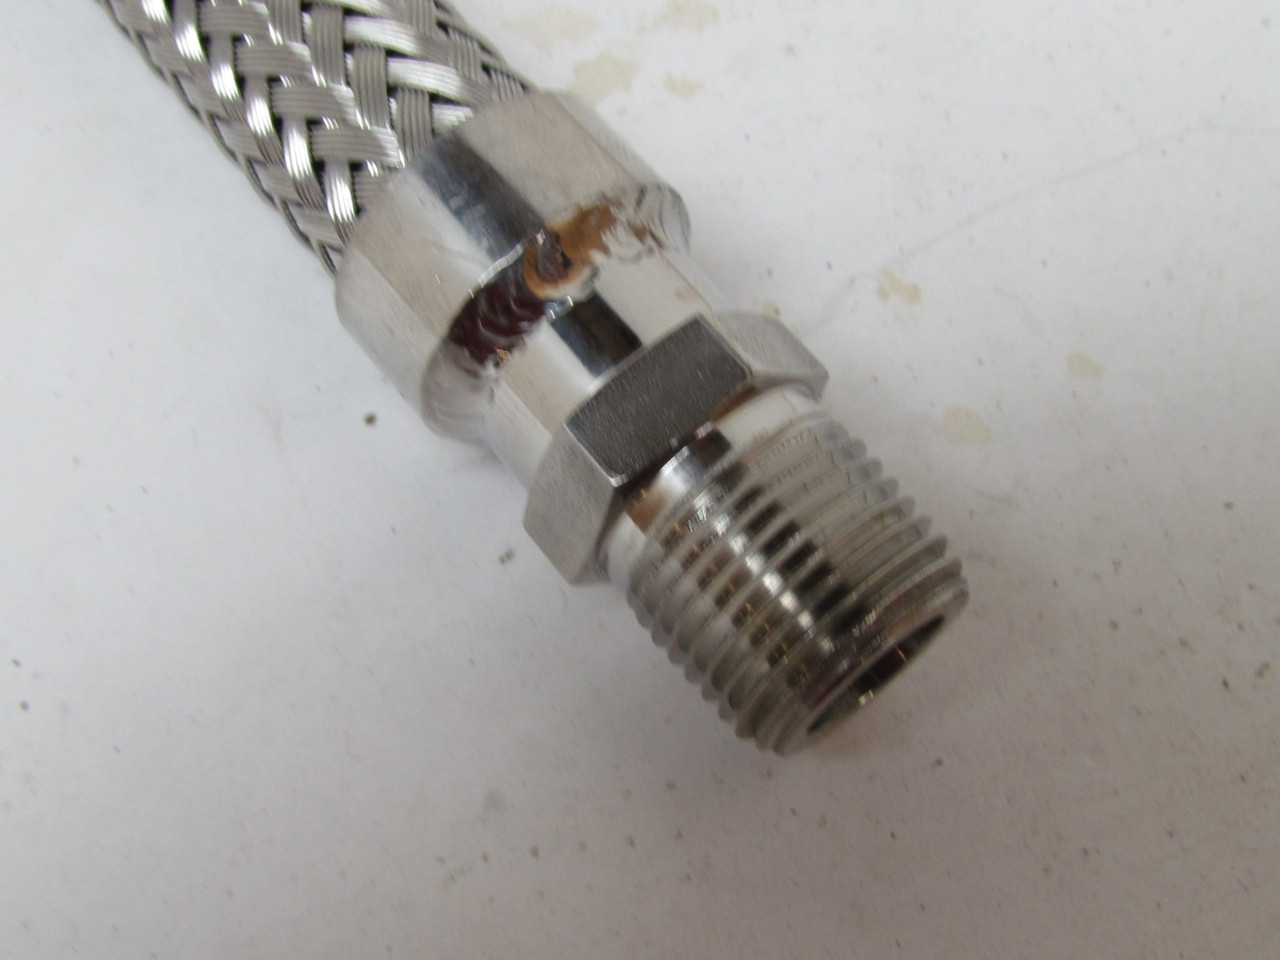 Stainless steel braided hose flexible connector fitting